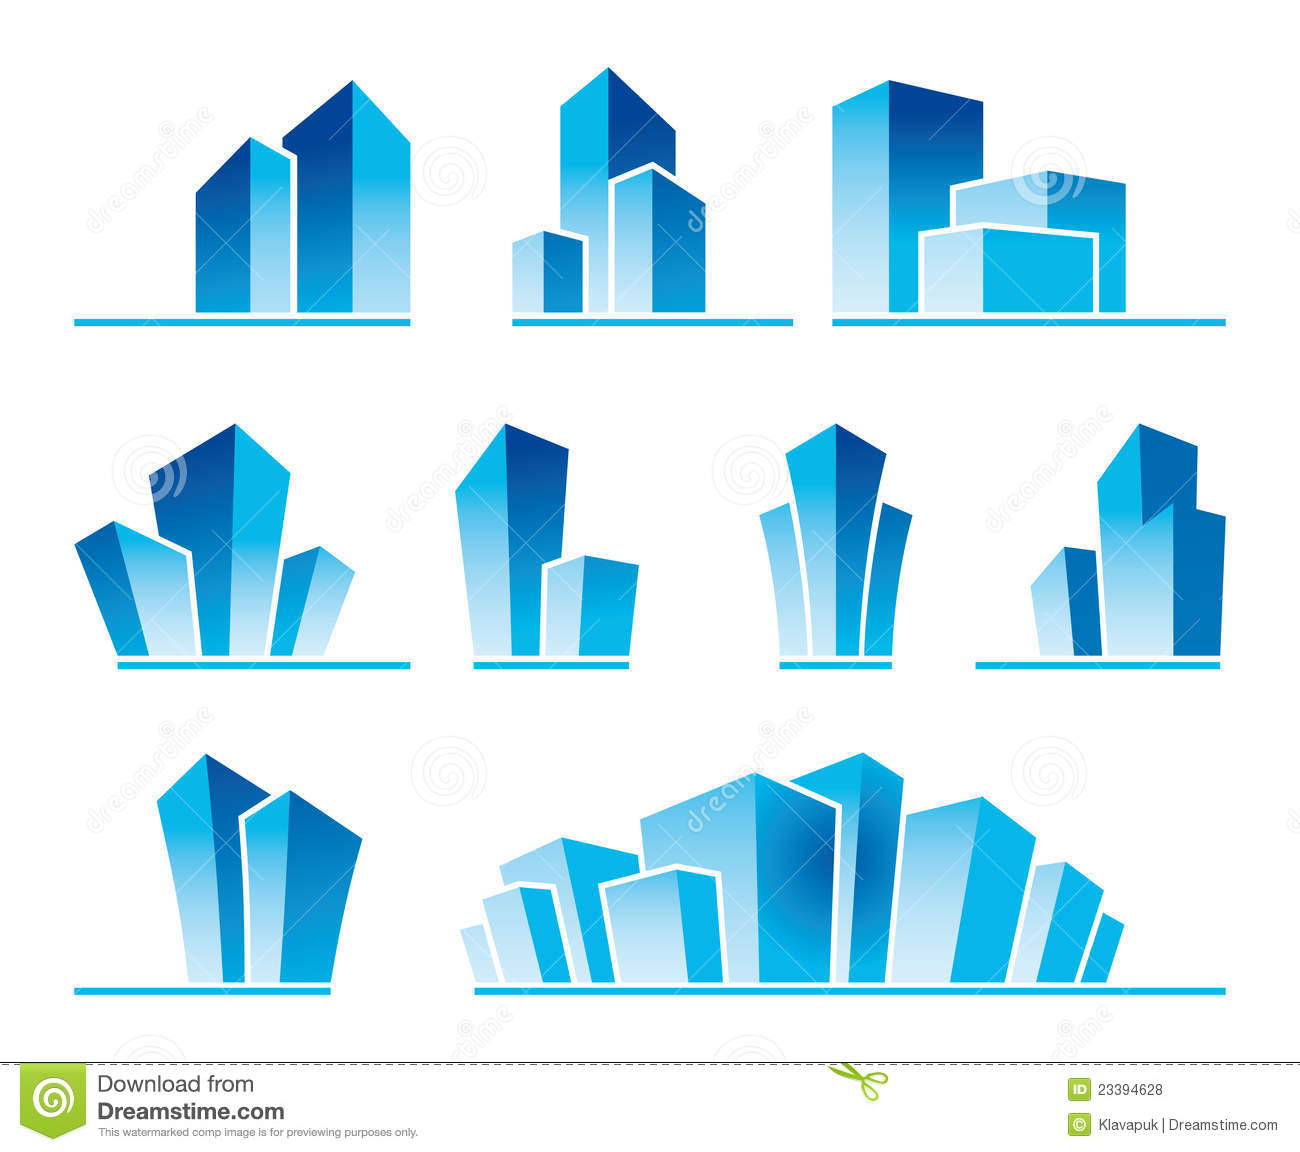 Real estate symbols stock vector illustration of district 23394628 real estate symbols biocorpaavc Image collections